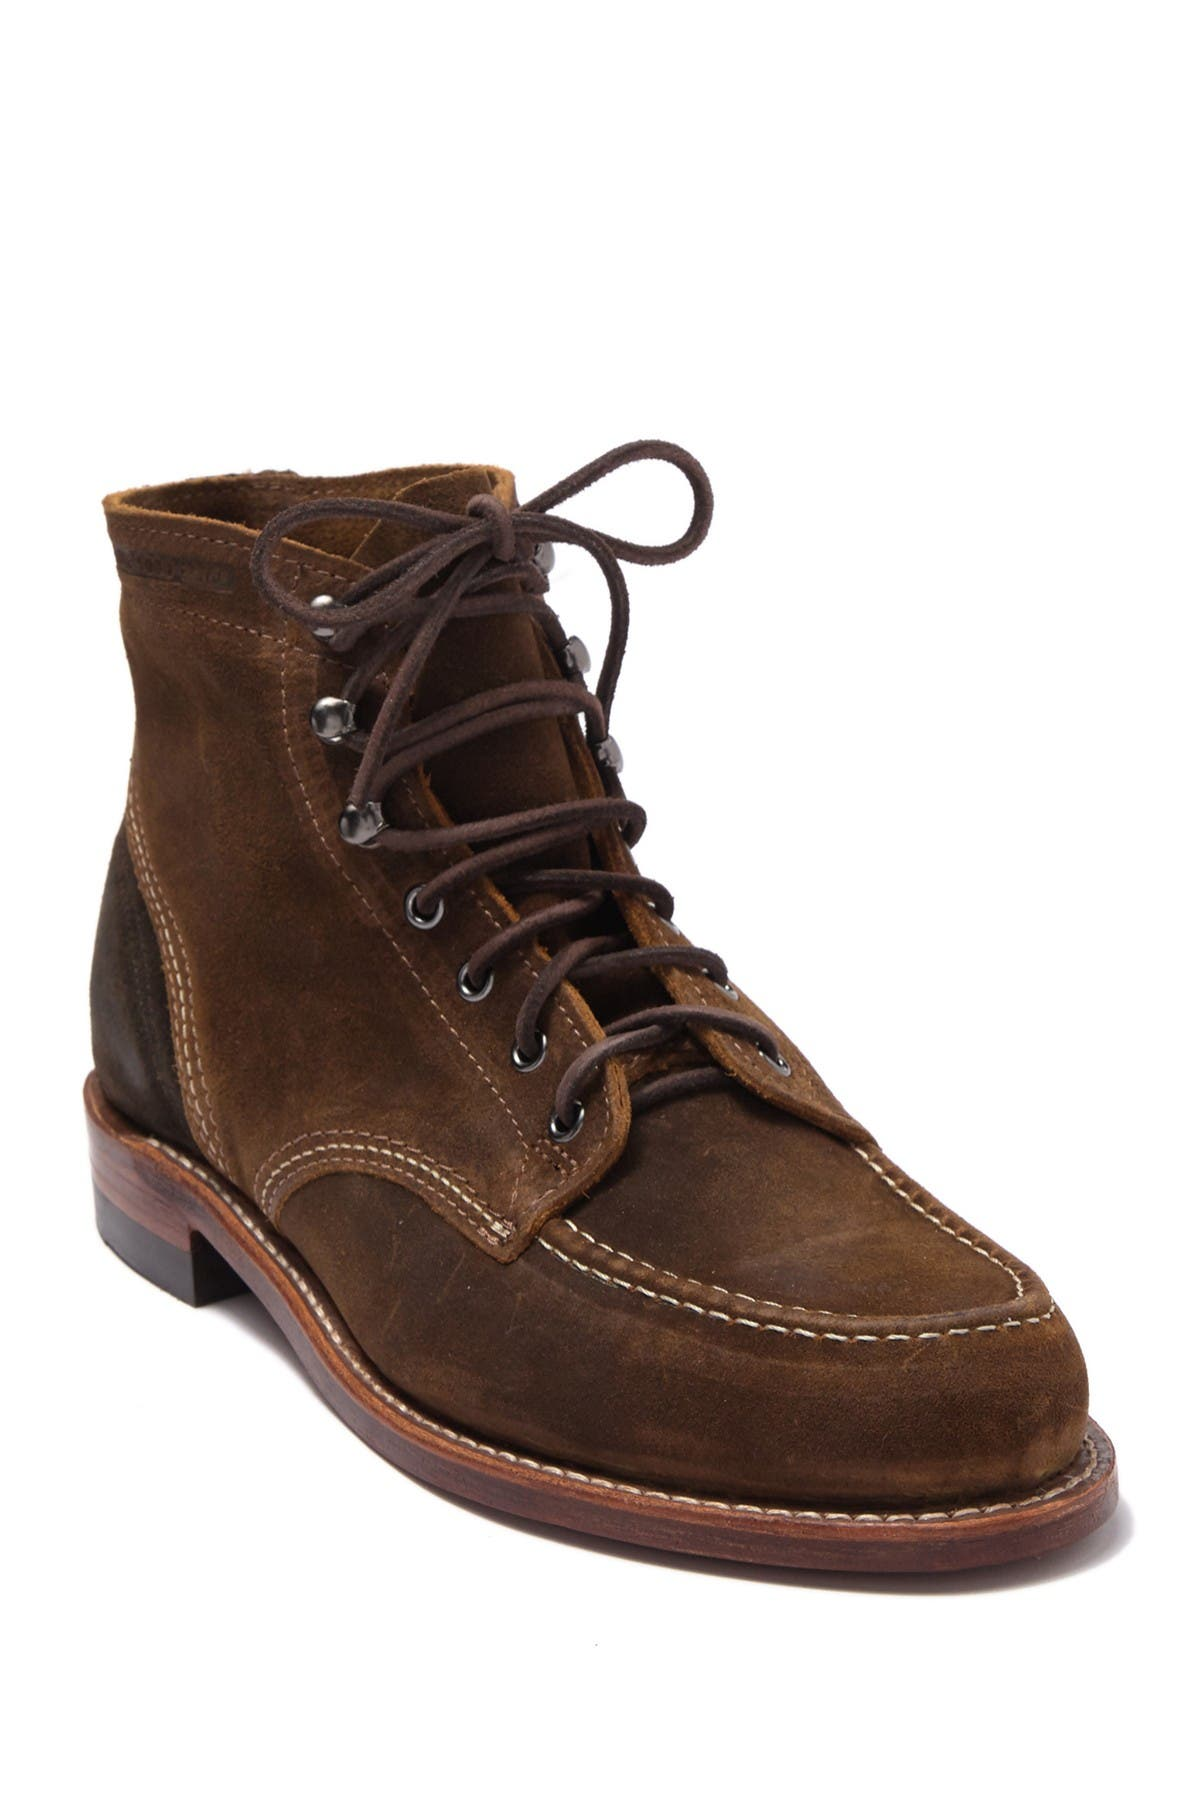 Image of Wolverine 1000 Mile 1940 Suede Boot